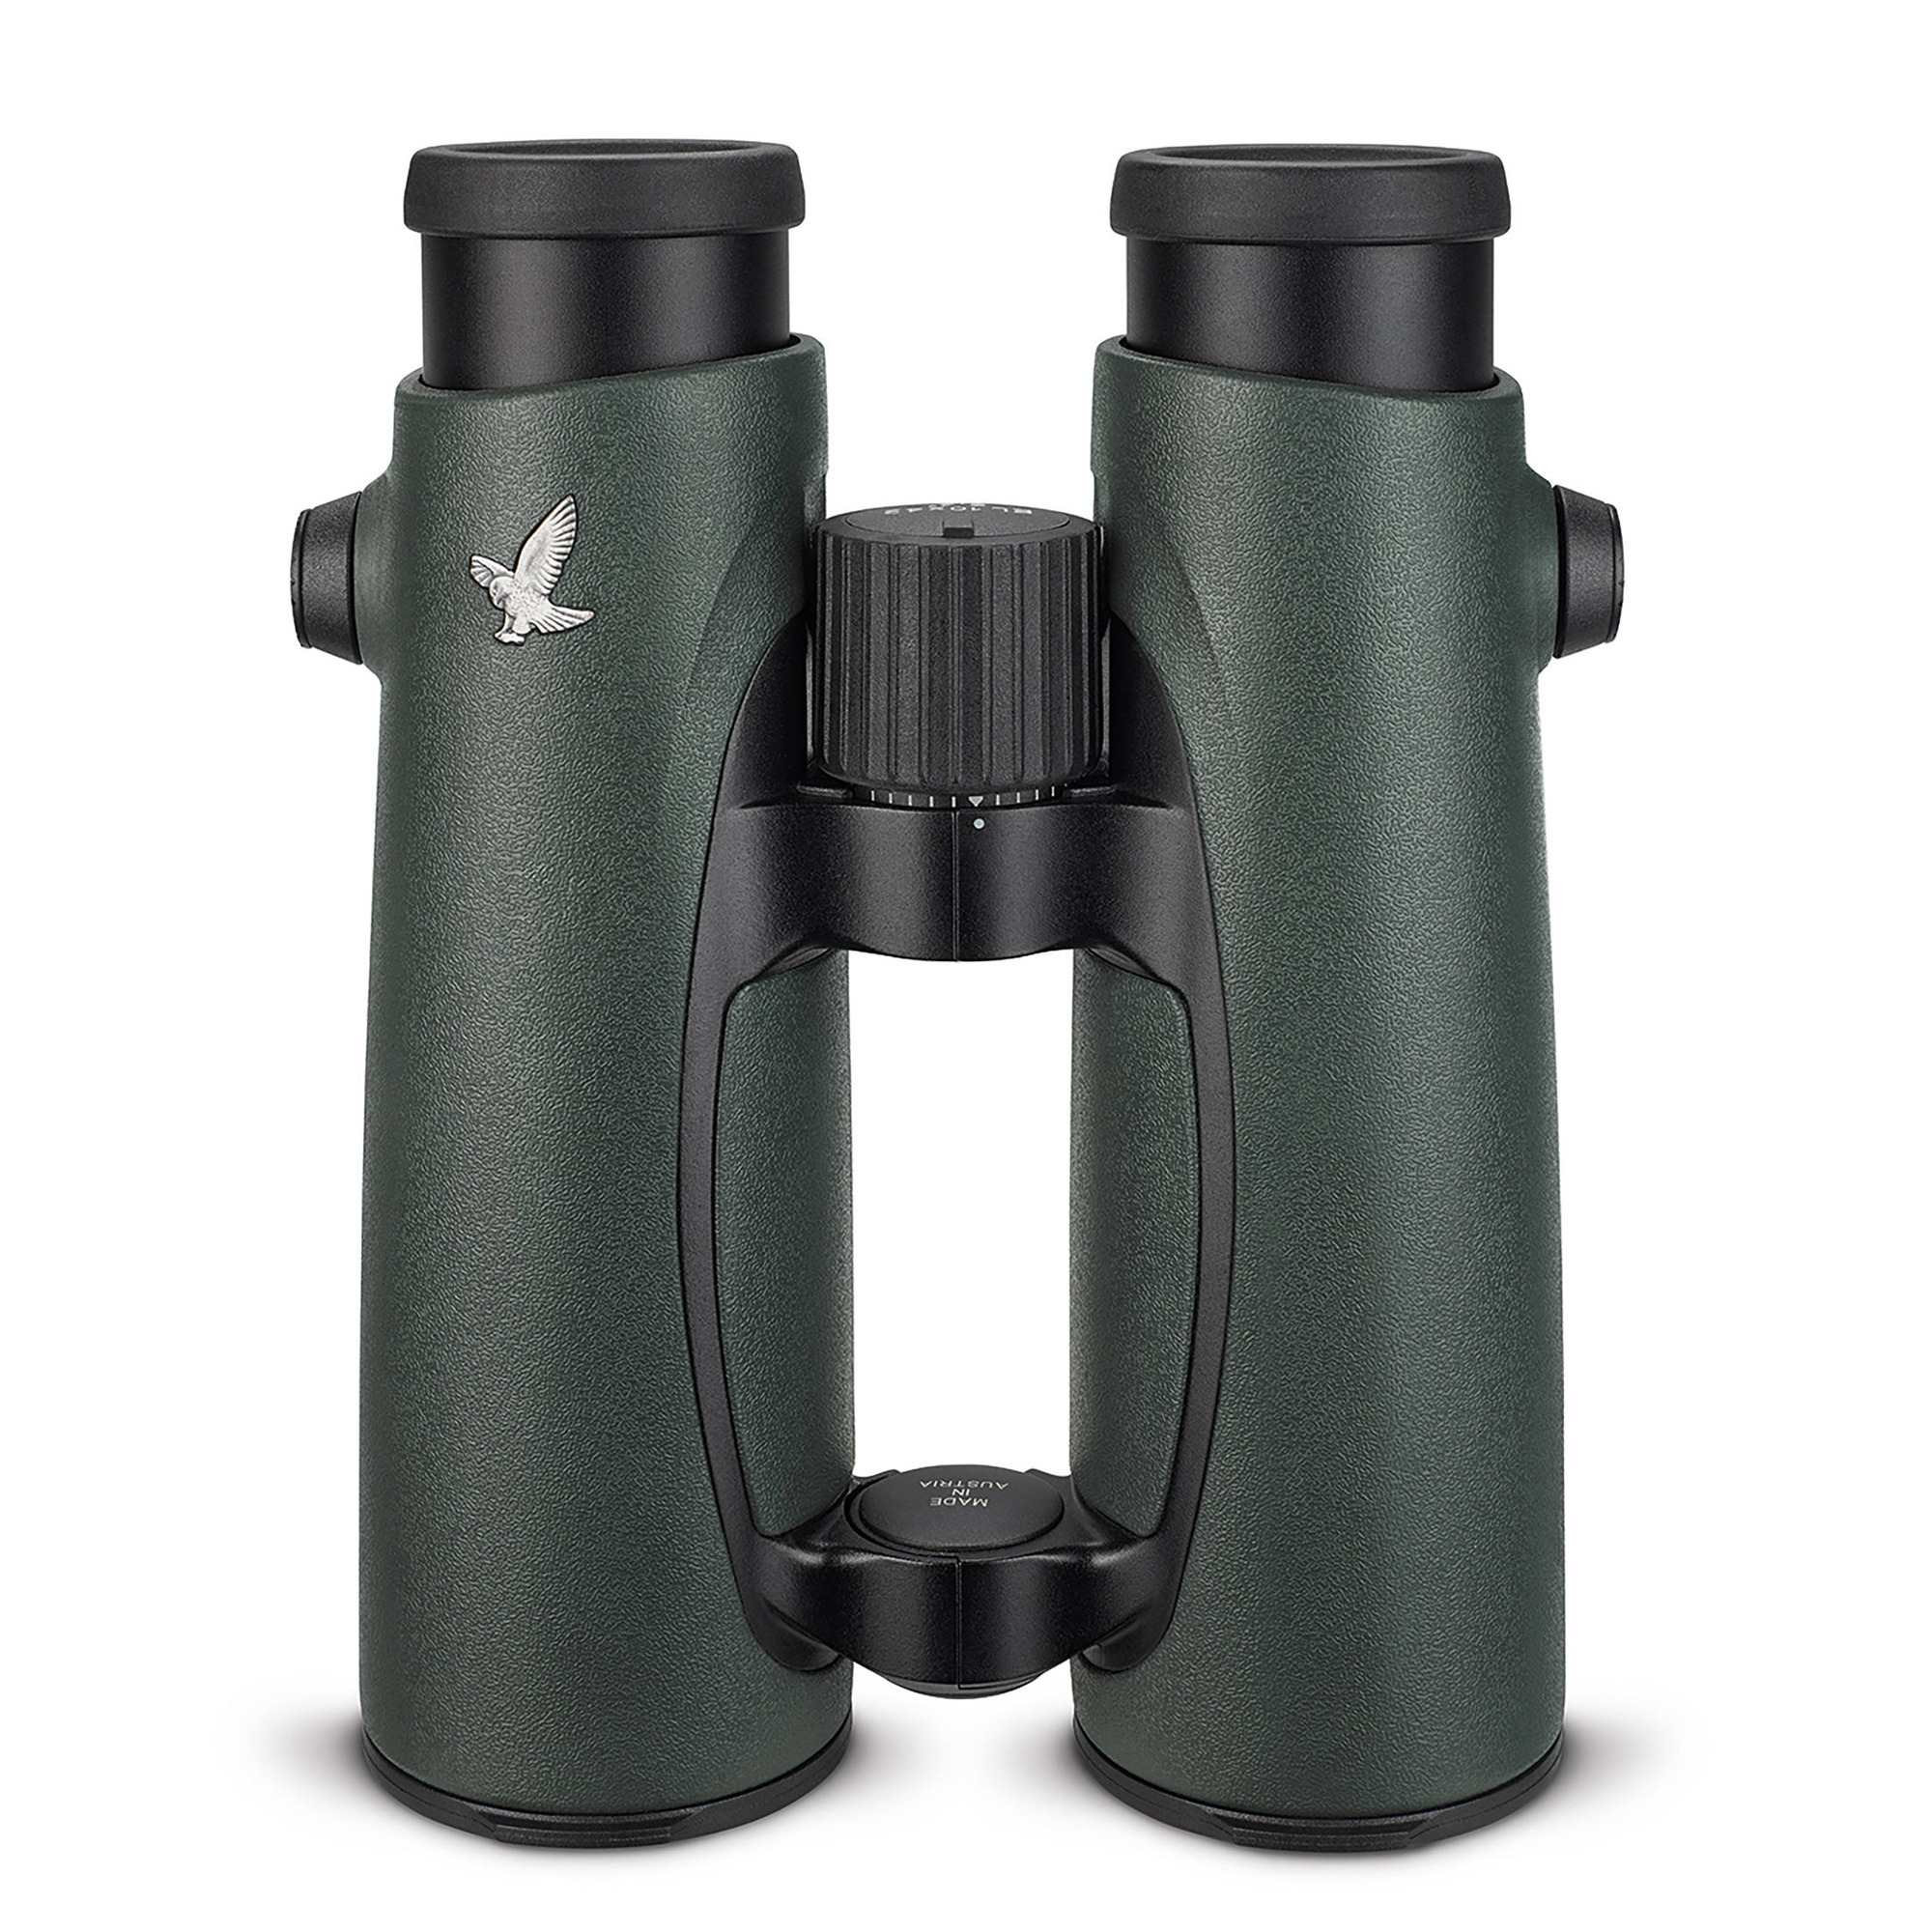 10x42 EL42 Binocular with FieldPro Package Green